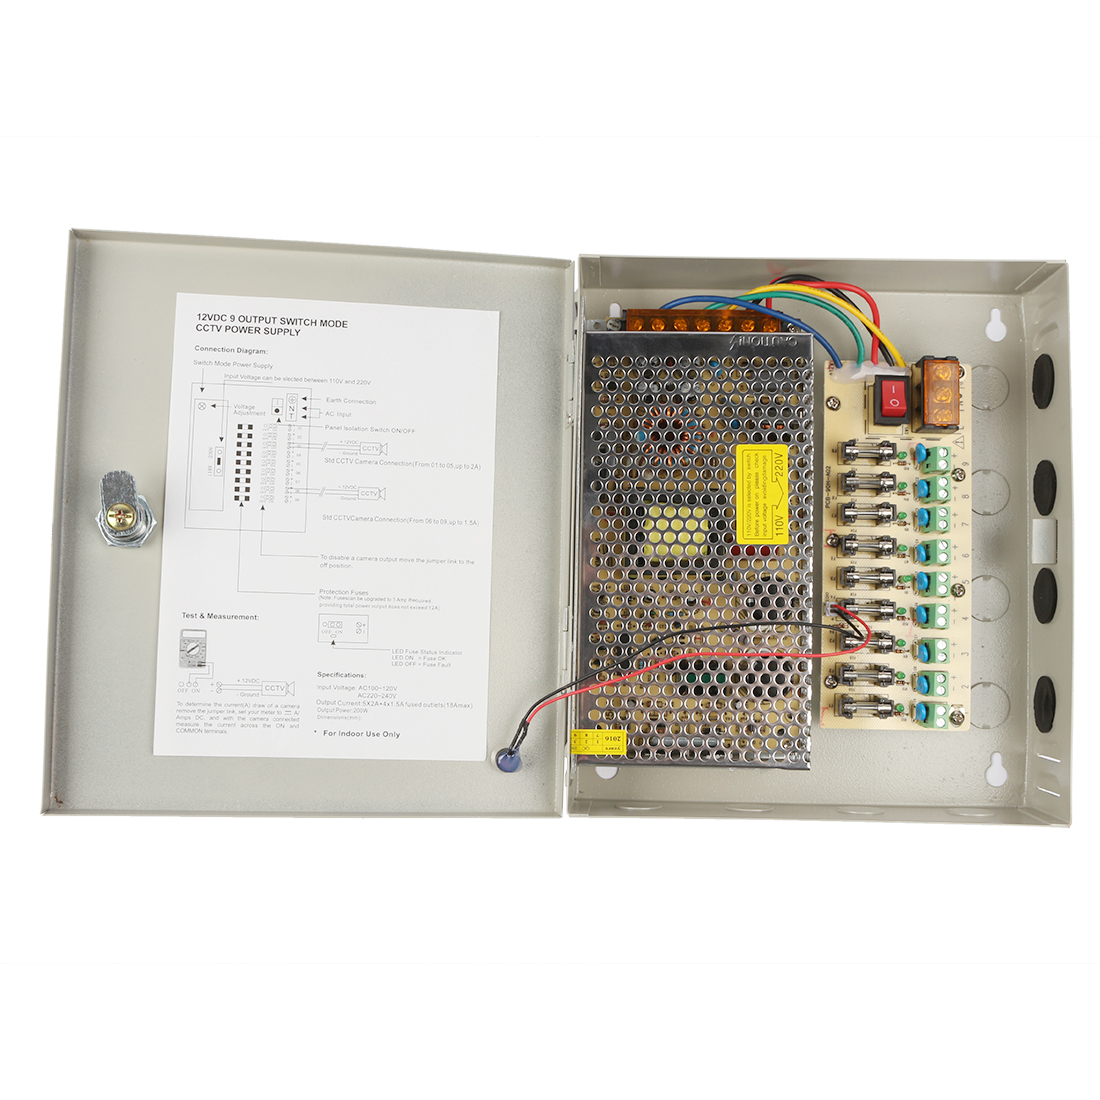 Dc 12v 15a 180w 9 Channel Cctv Distributed Power Supply Box For Wiring Diagram Security Camera